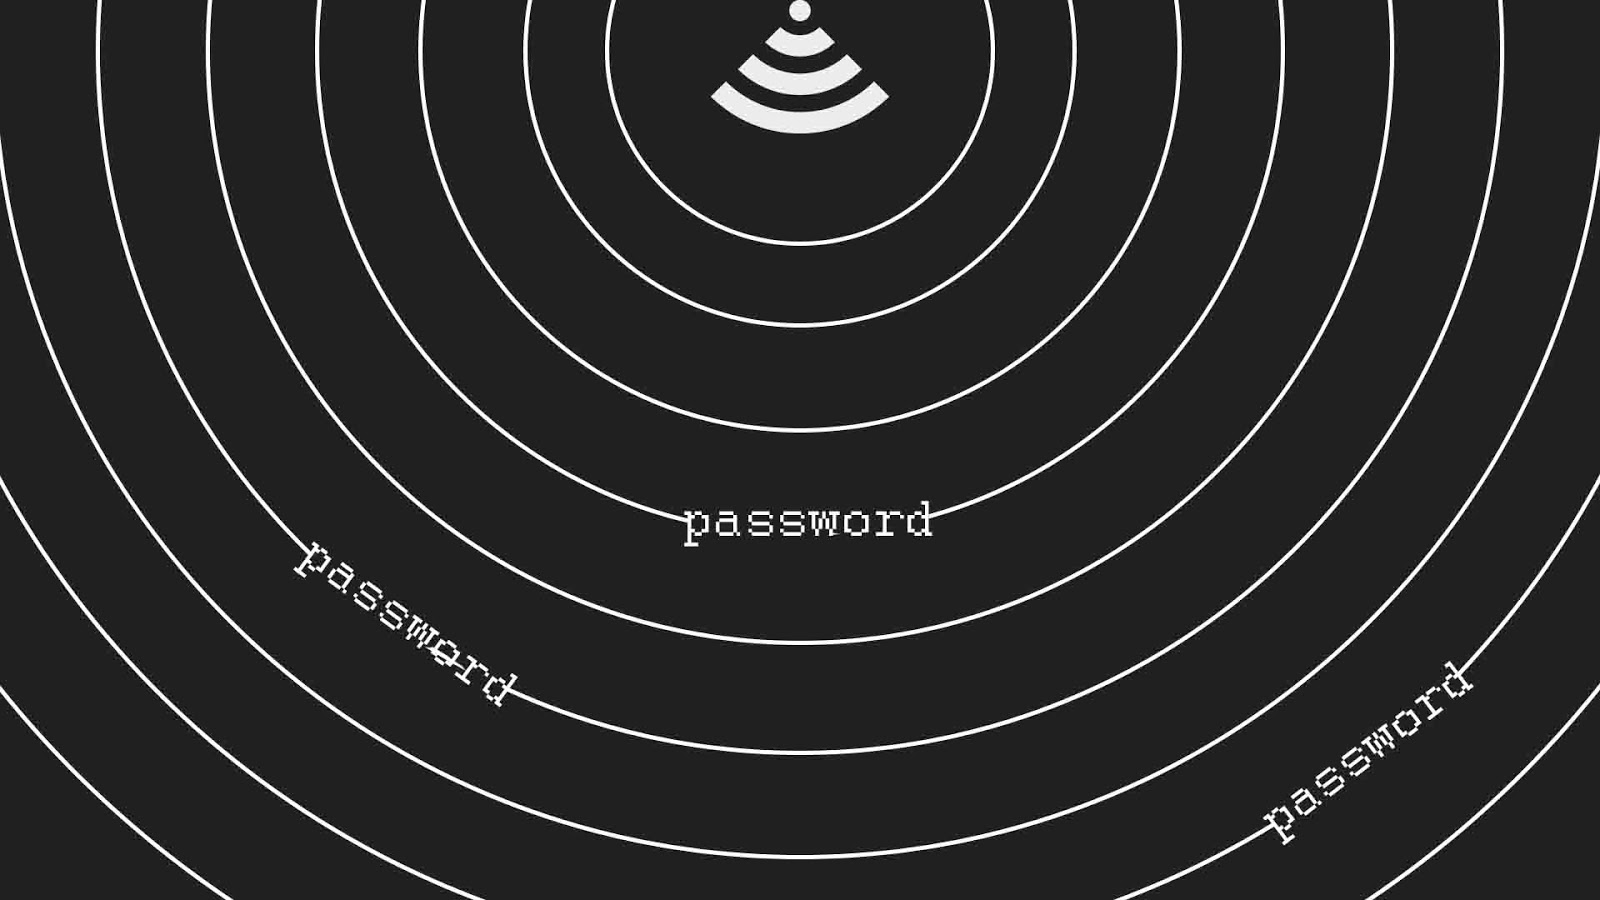 hacker can steal your sensitive data by observing wifi signal interference